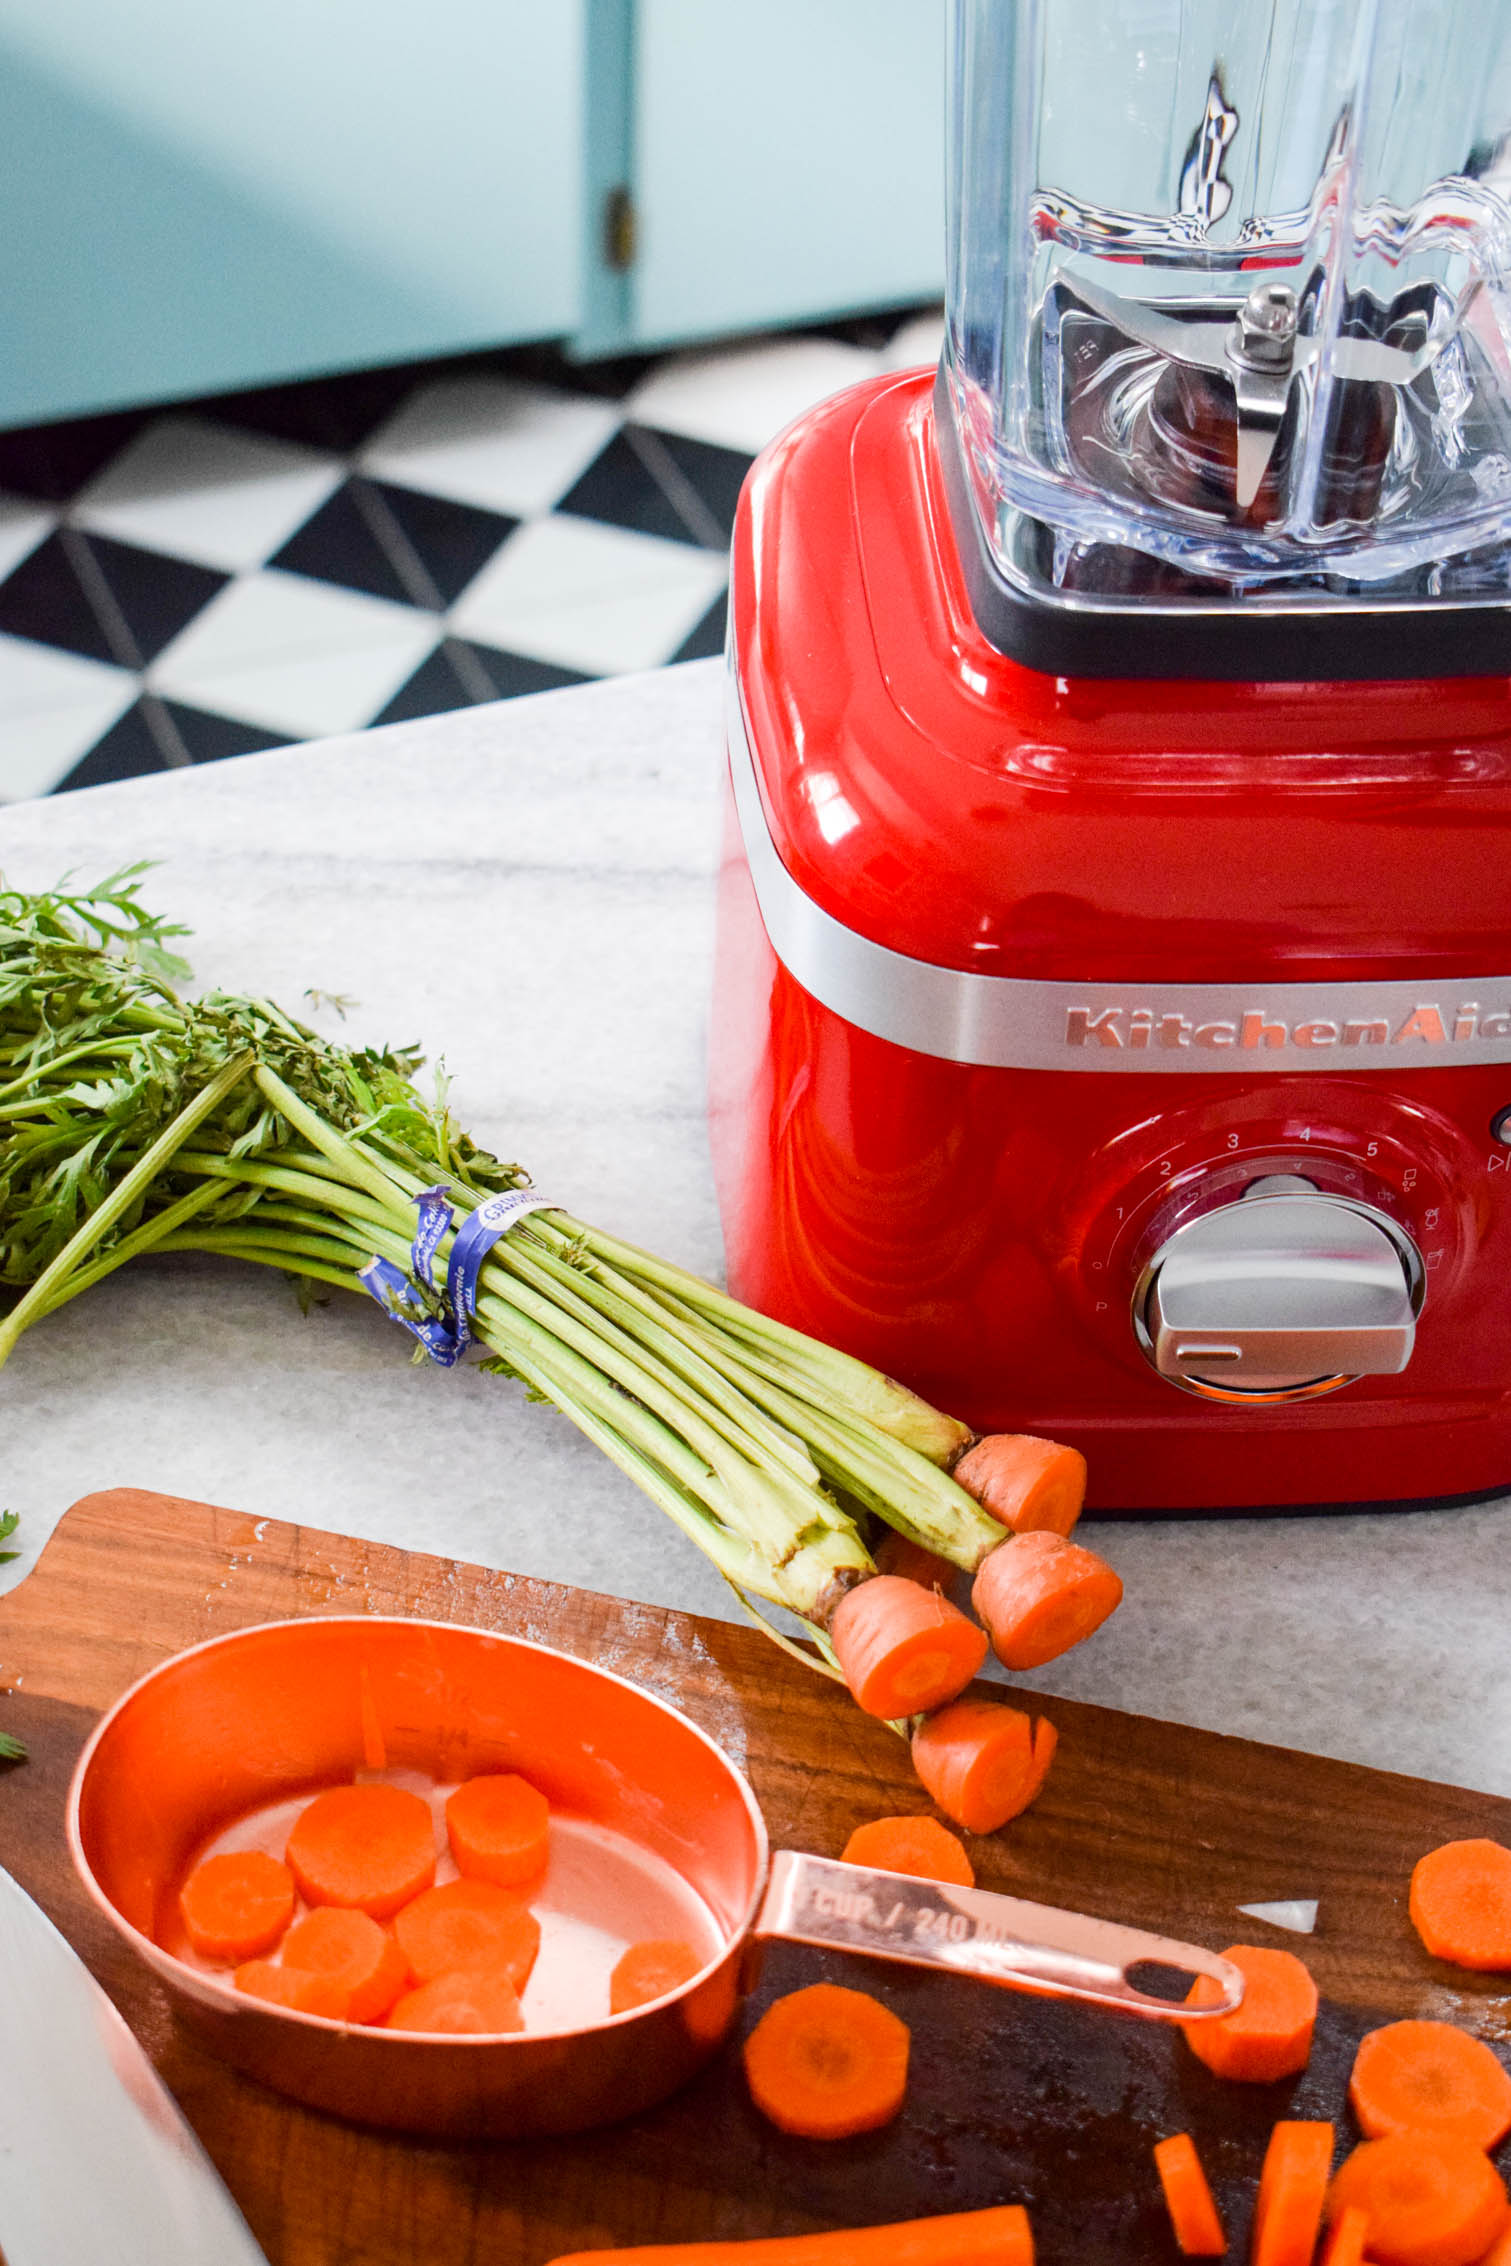 Whip up a tasty, hearty, and delicious carrot and ginger soup. Add whipped cream for an extra texture, and enjoy on a cold fall day. Your KitchenAid K400 Blender makes it an easy job.